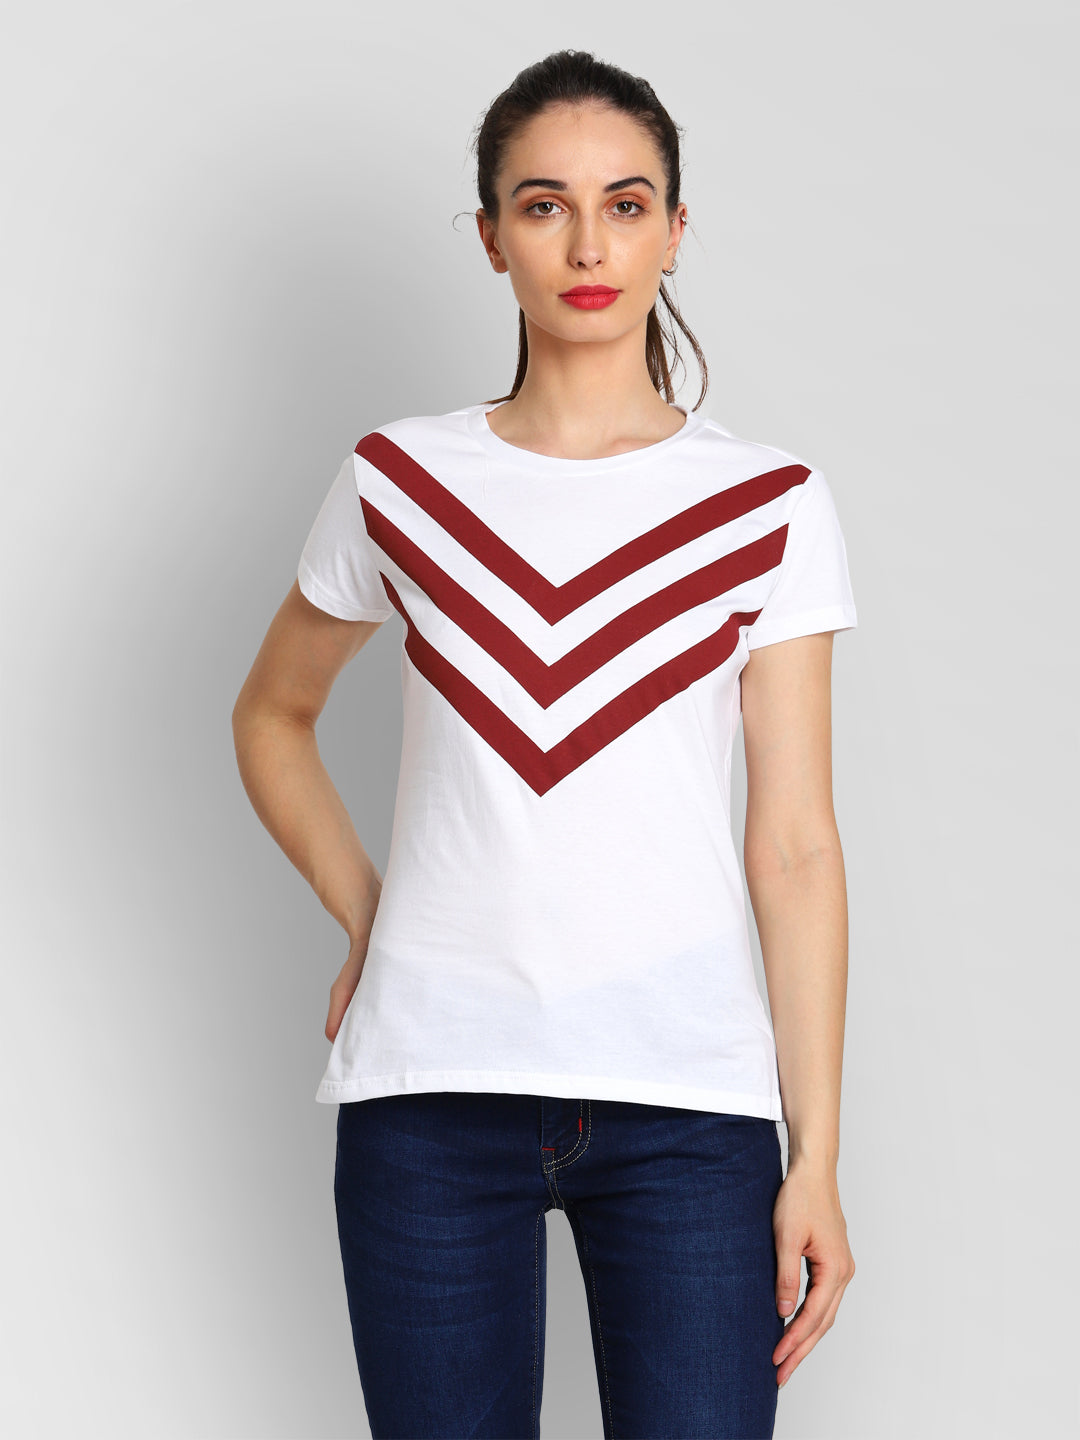 JUMP USA Women White & Red Solid T-Shirts